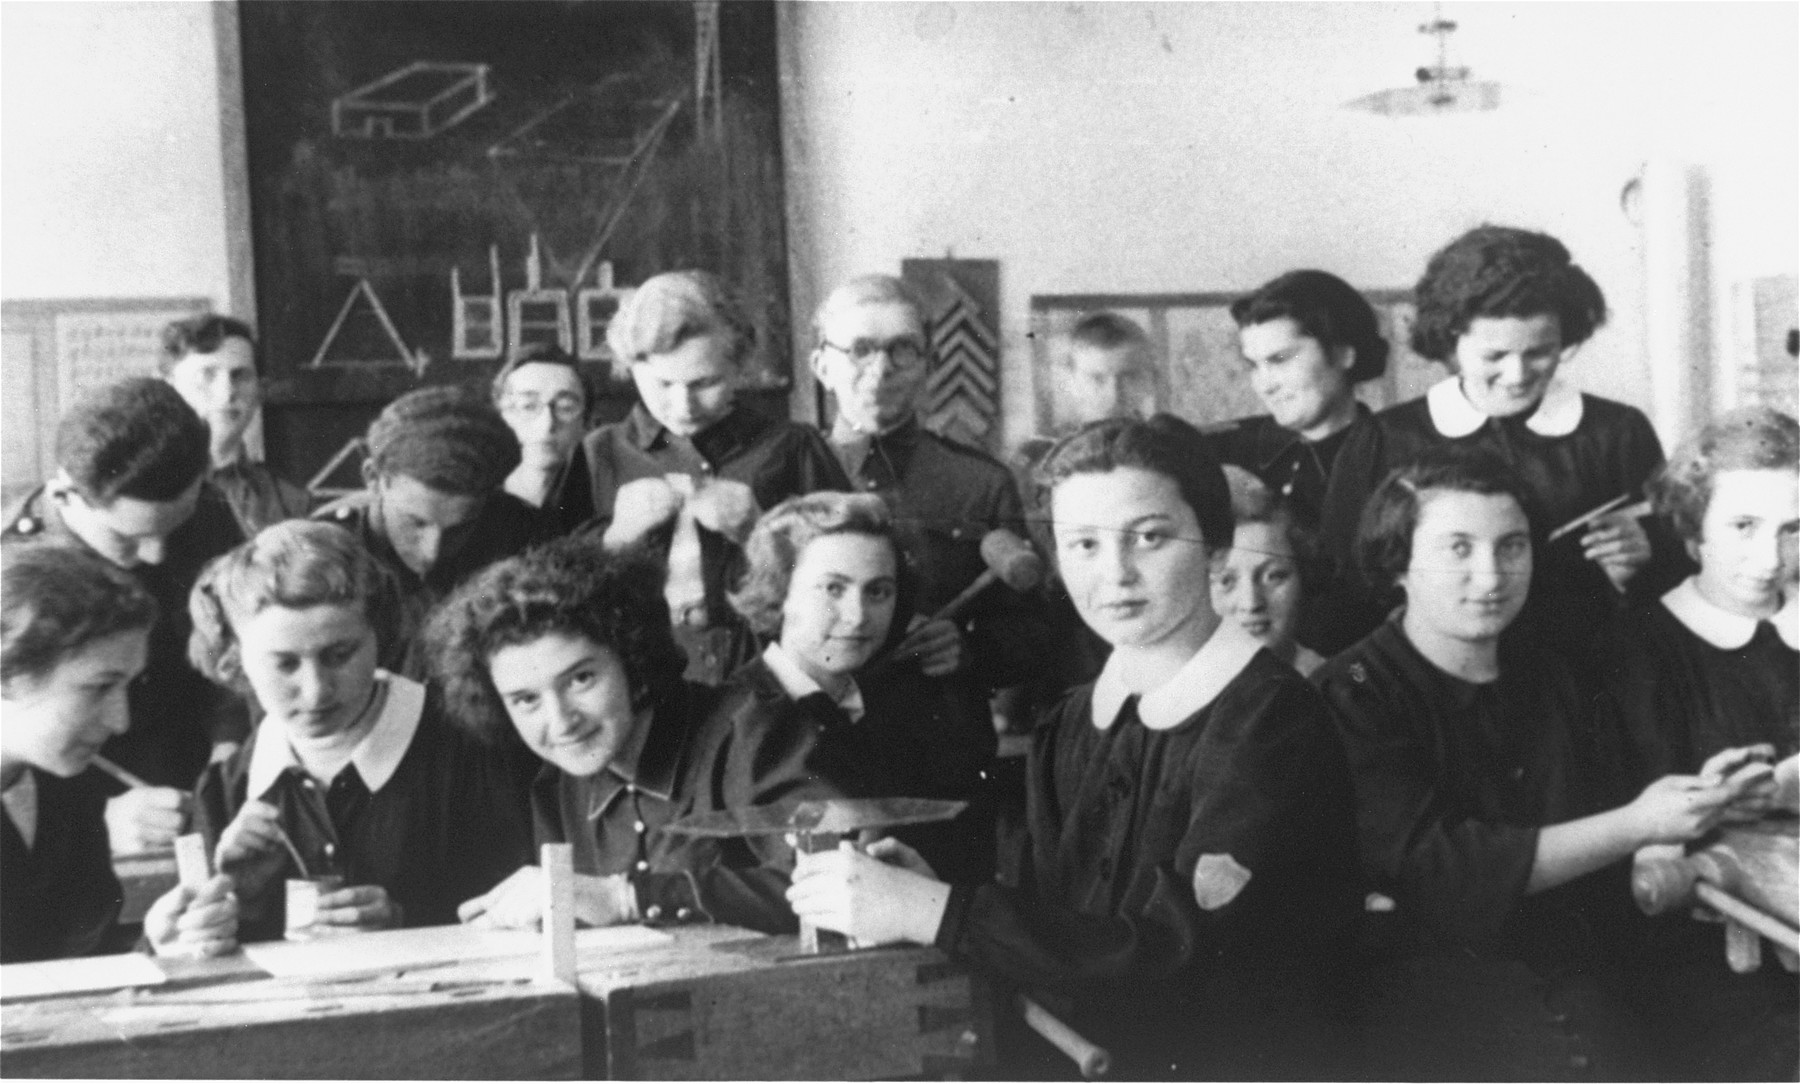 Students attend an industrial arts class at the Jewish gymnasium in Stanislawow.  Among those pictured are Amalie Petranker (first row, fourth from the left) and Pepka Petranker (standing behind Amalie).